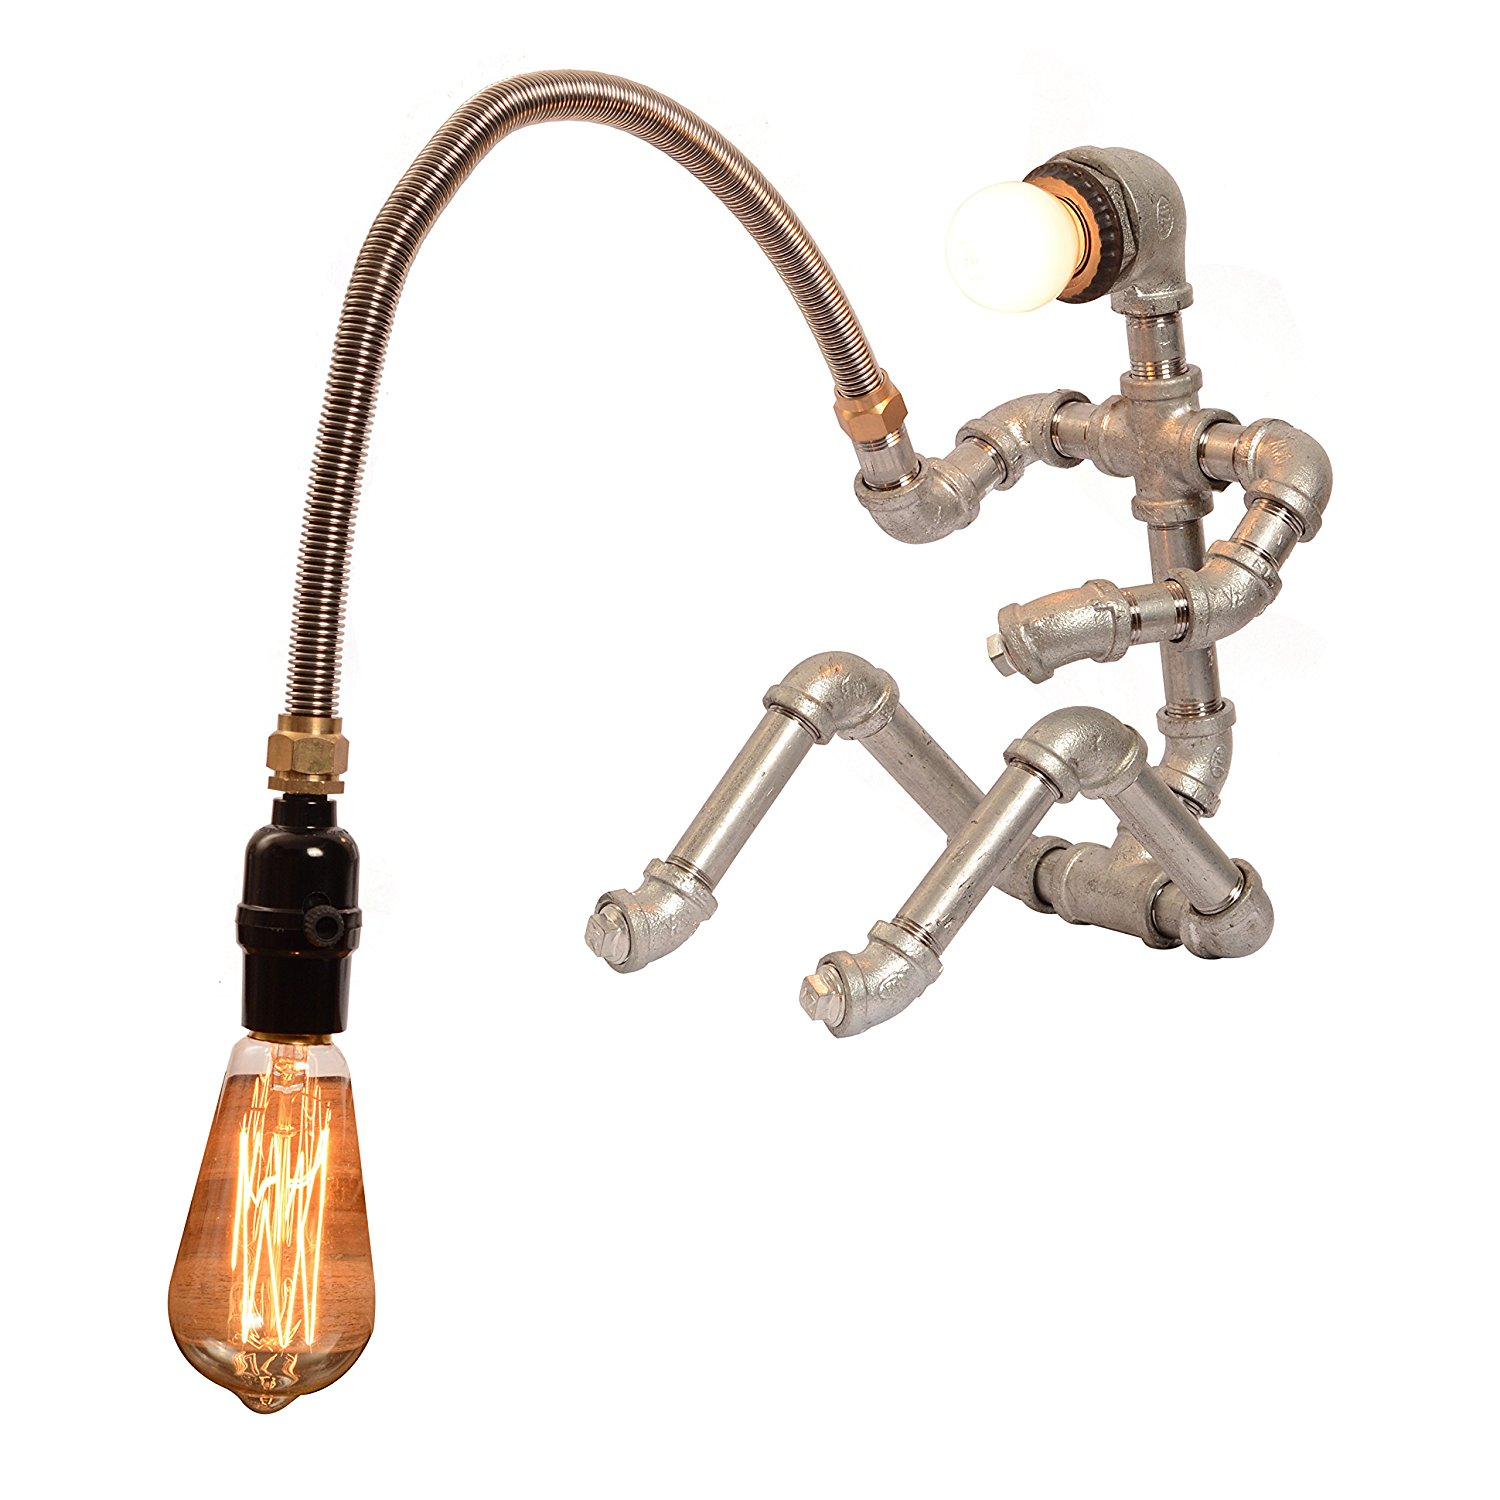 Cheap Diy Industrial Lamp Find Diy Industrial Lamp Deals On Line At Alibaba Com